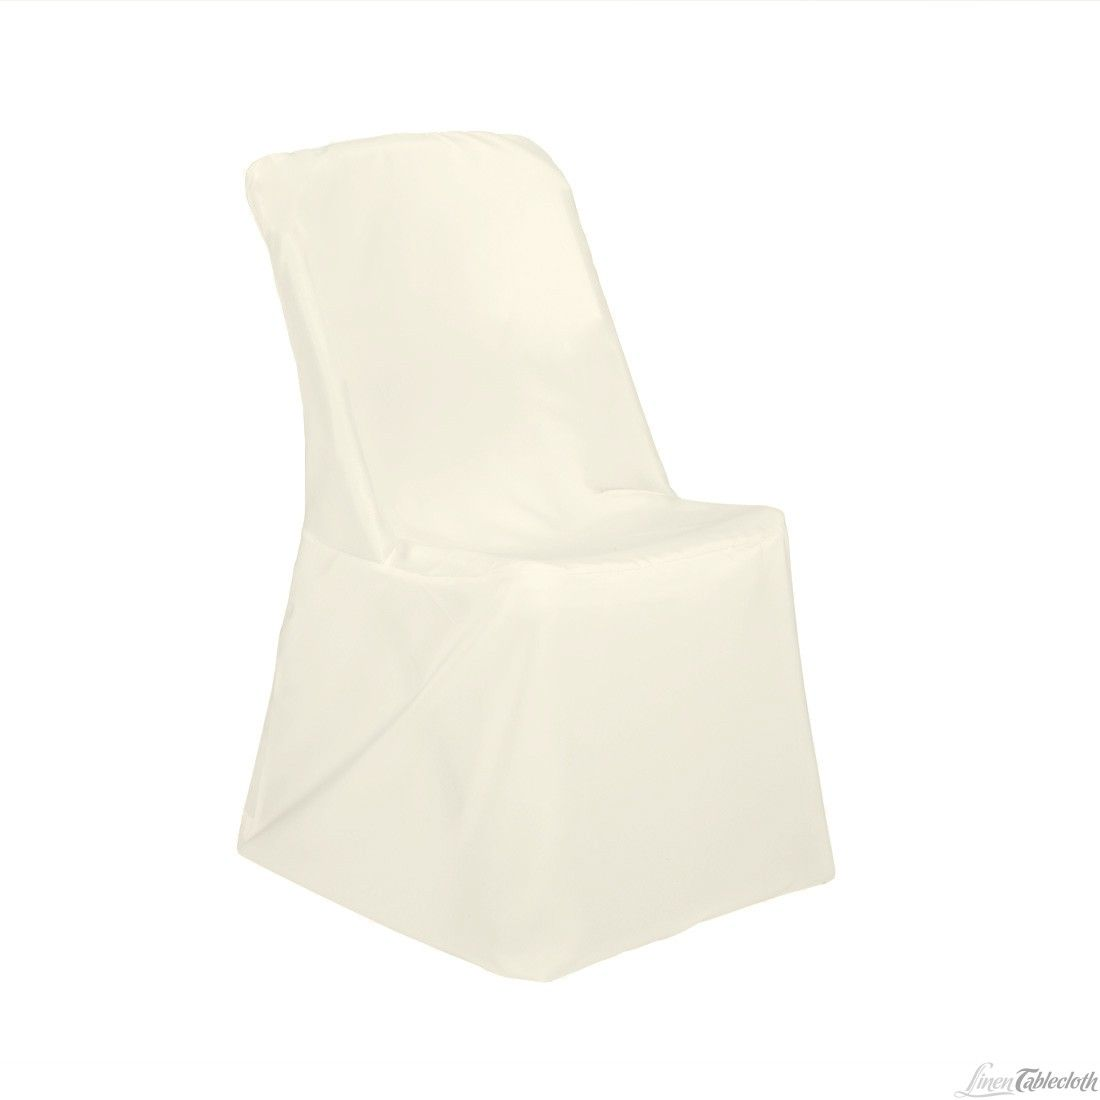 Lifetime Chair Covers Ivory Big Joe Roma Floor Polyester Folding Cover Planning The Cart